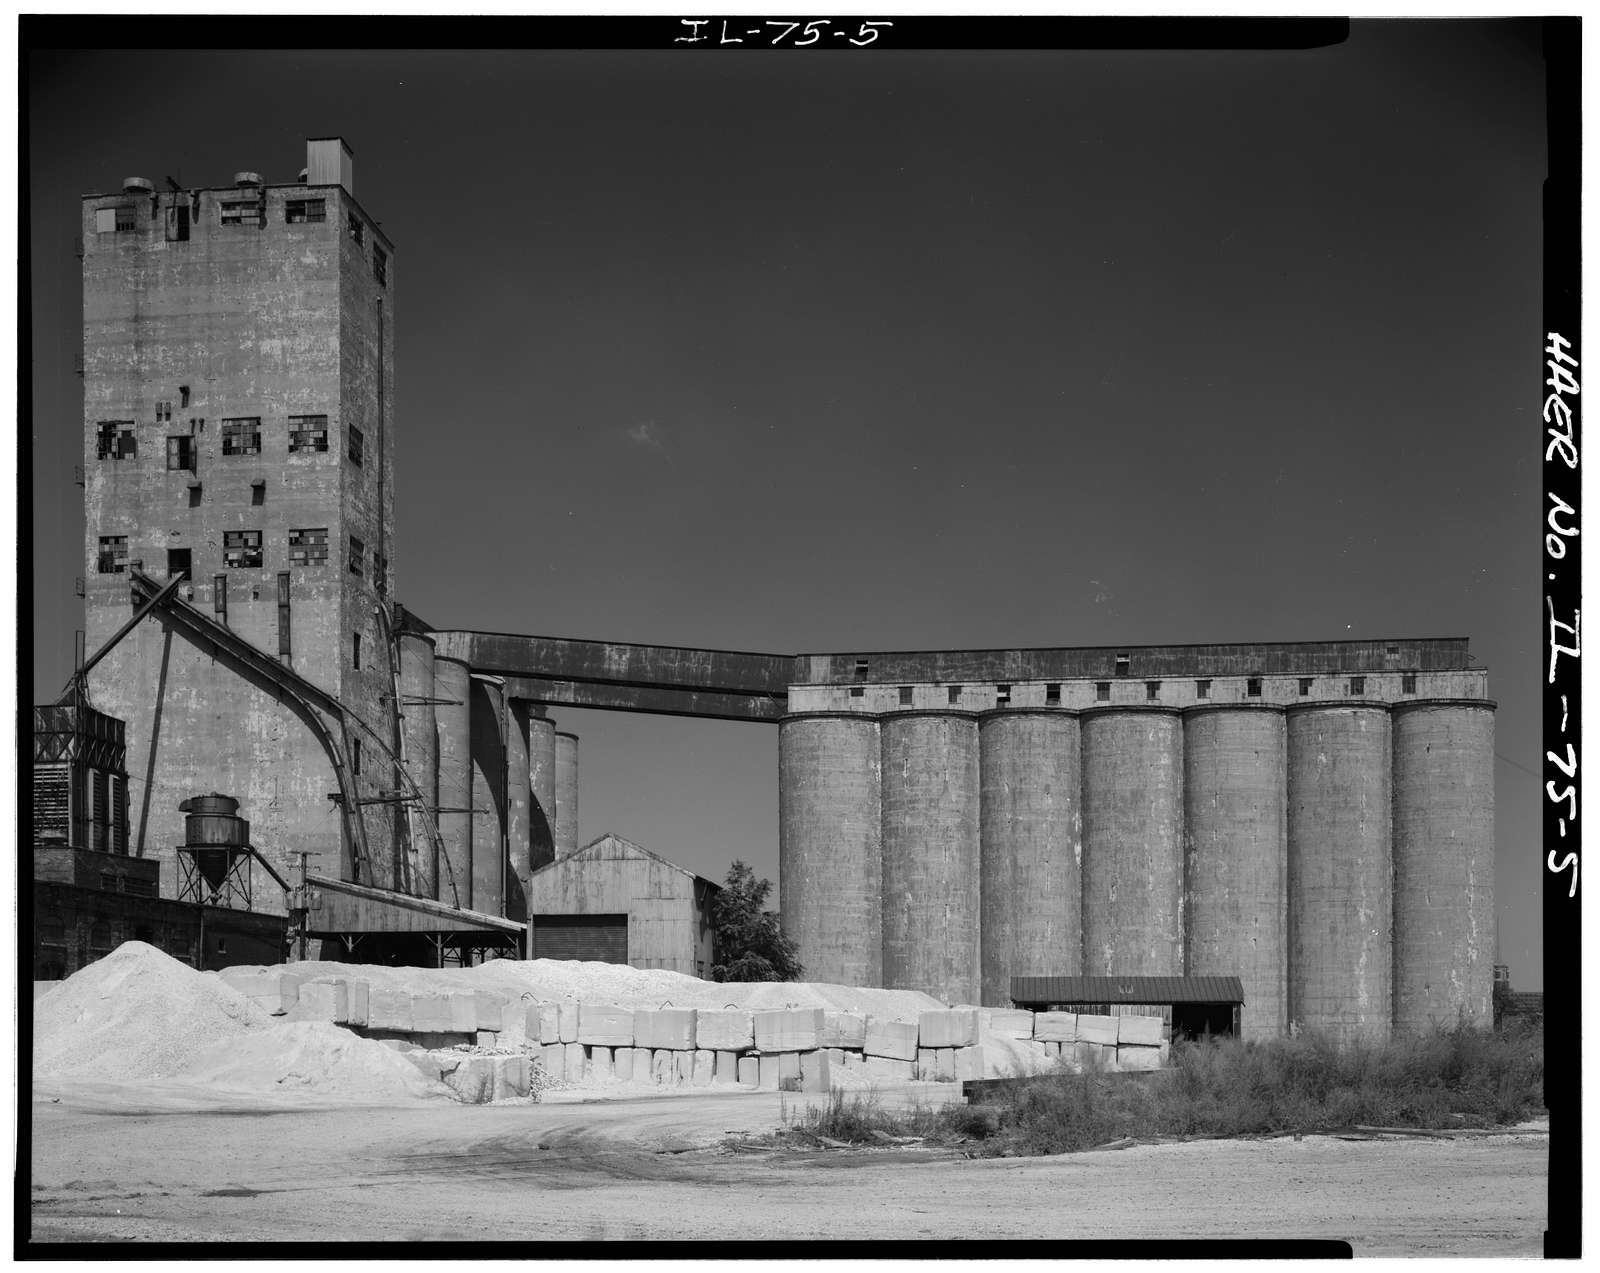 Santa Fe Railroad, Grain Elevator, On Atchison, Topeka & Santa Fe Railroad slip, South side of sanitary & ship canal, Chicago, Cook County, IL